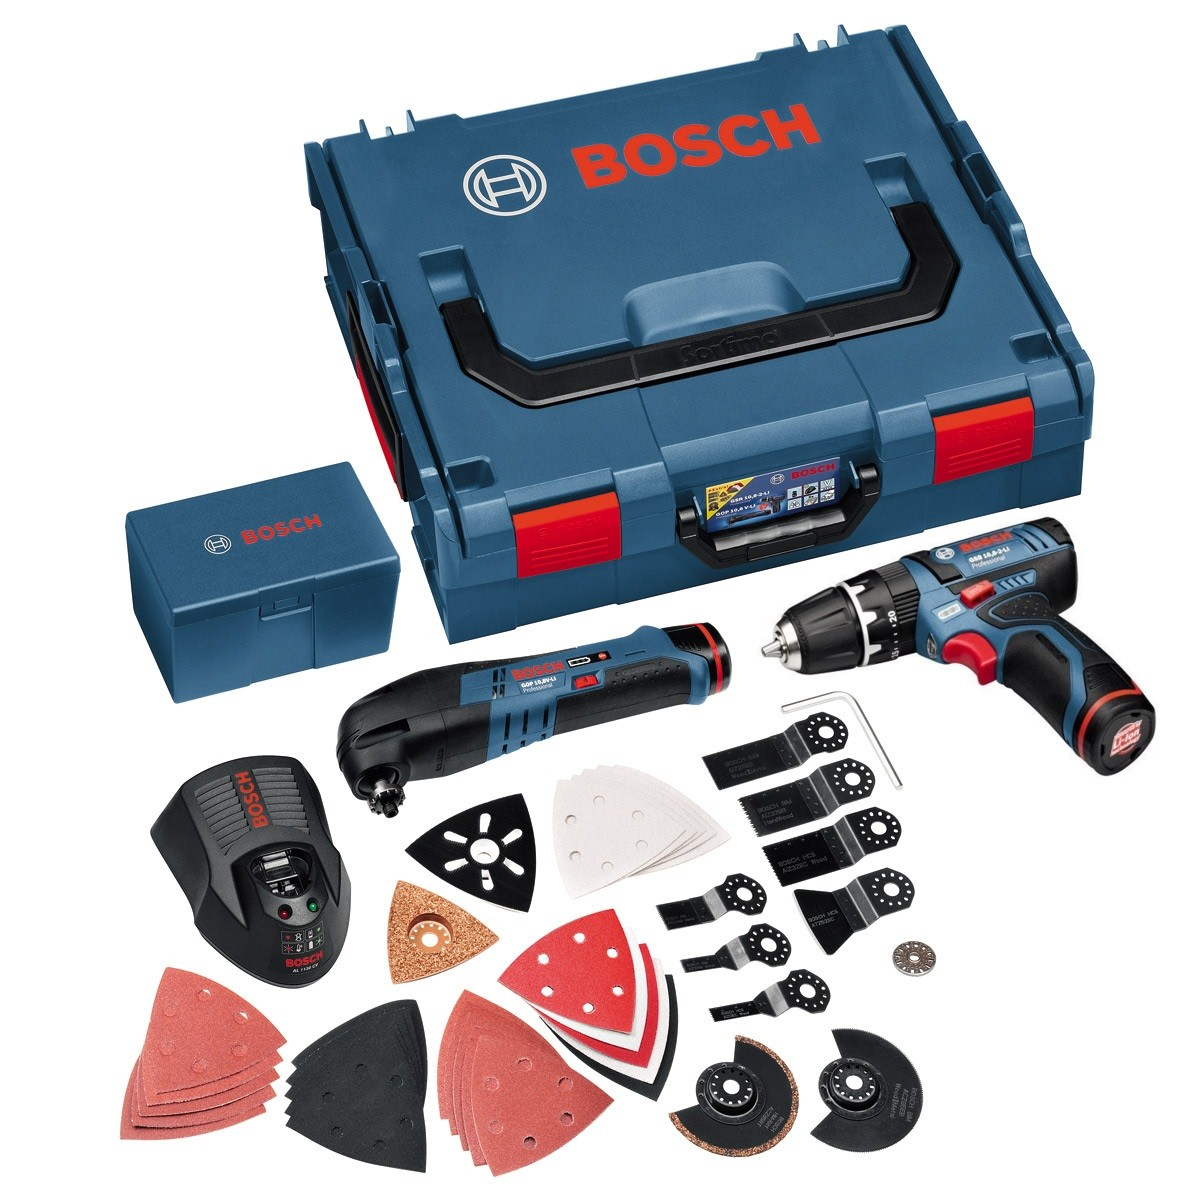 Bosch GOP & GSB 10.8v Multi Cutter & Combi Drill Twin Kit inc 2x 1.5Ah Batts & Charger in L-Boxx